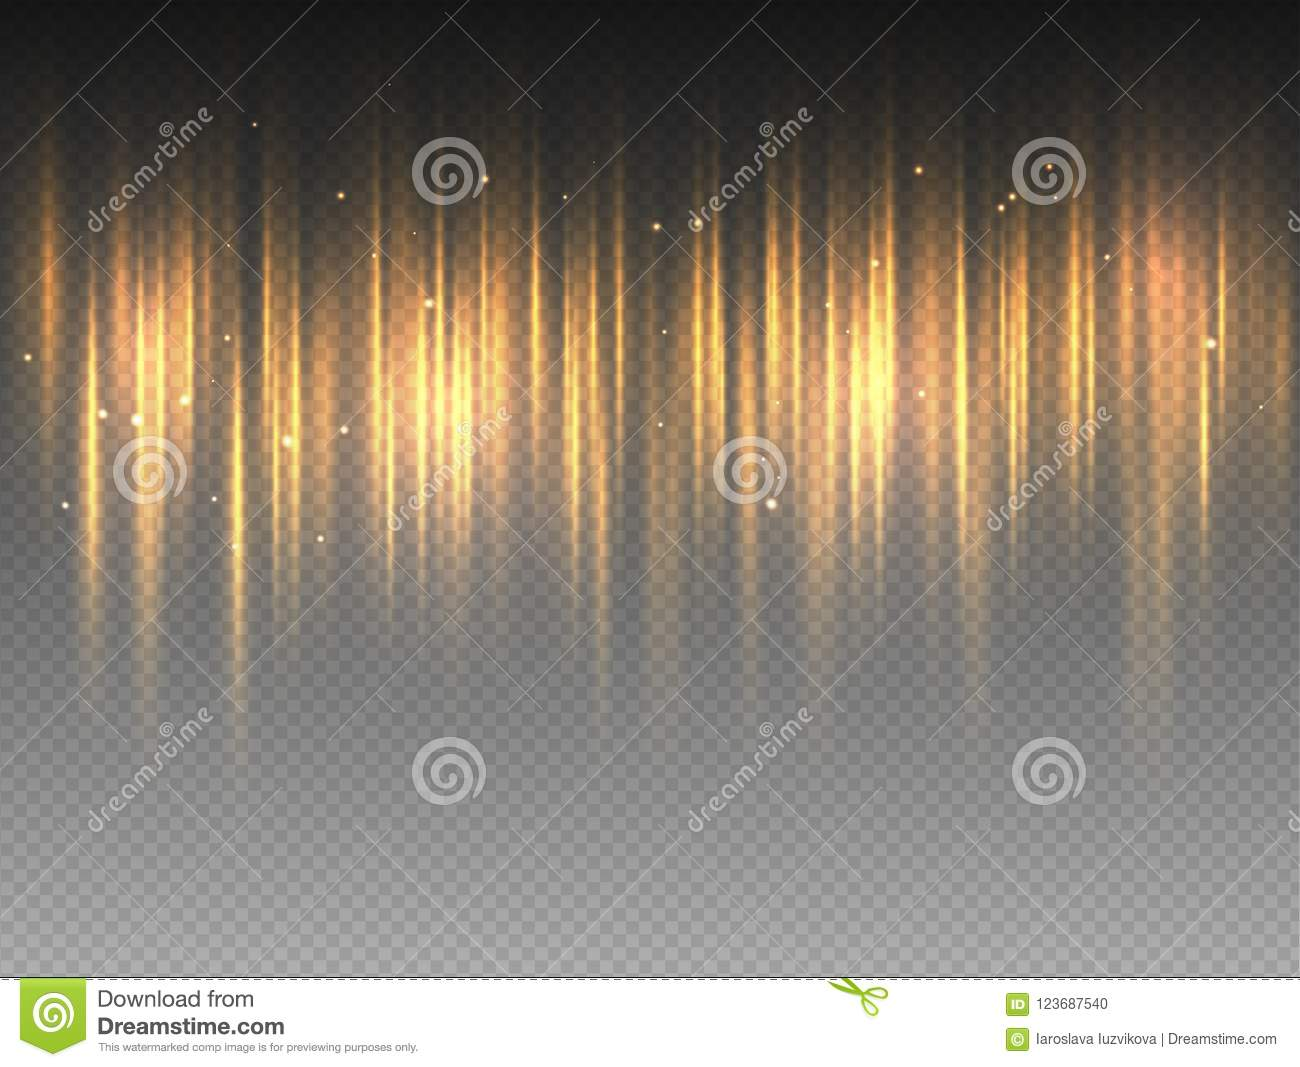 Vertical golden yellow radiance glow pulsing rays on transparent background. Vector abstract illustration of hot orange Aurora